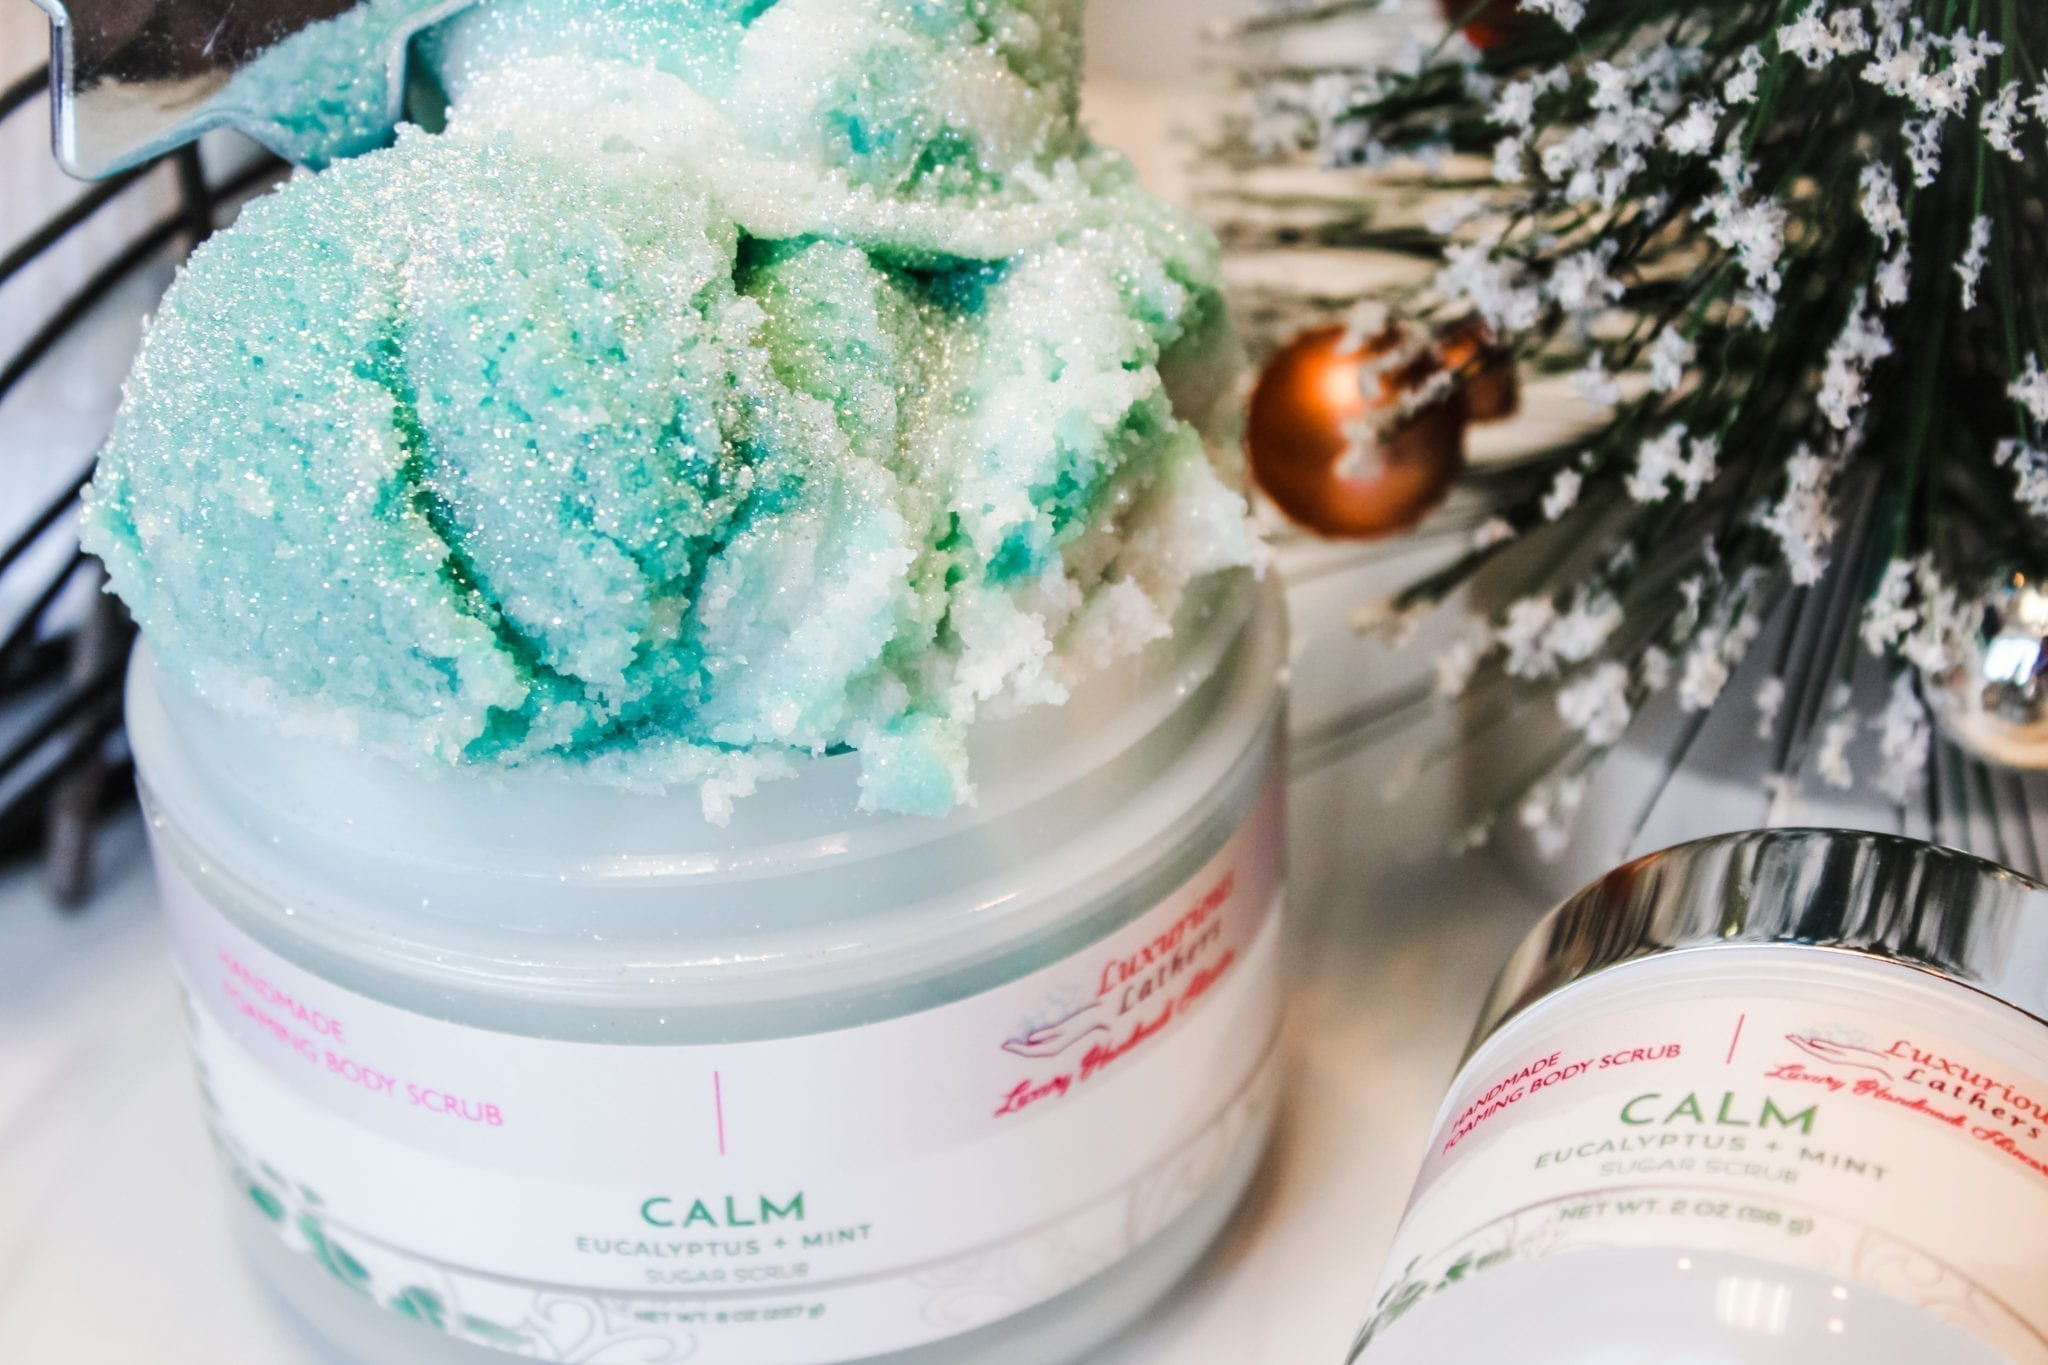 Calm Foaming Sugar Scrub